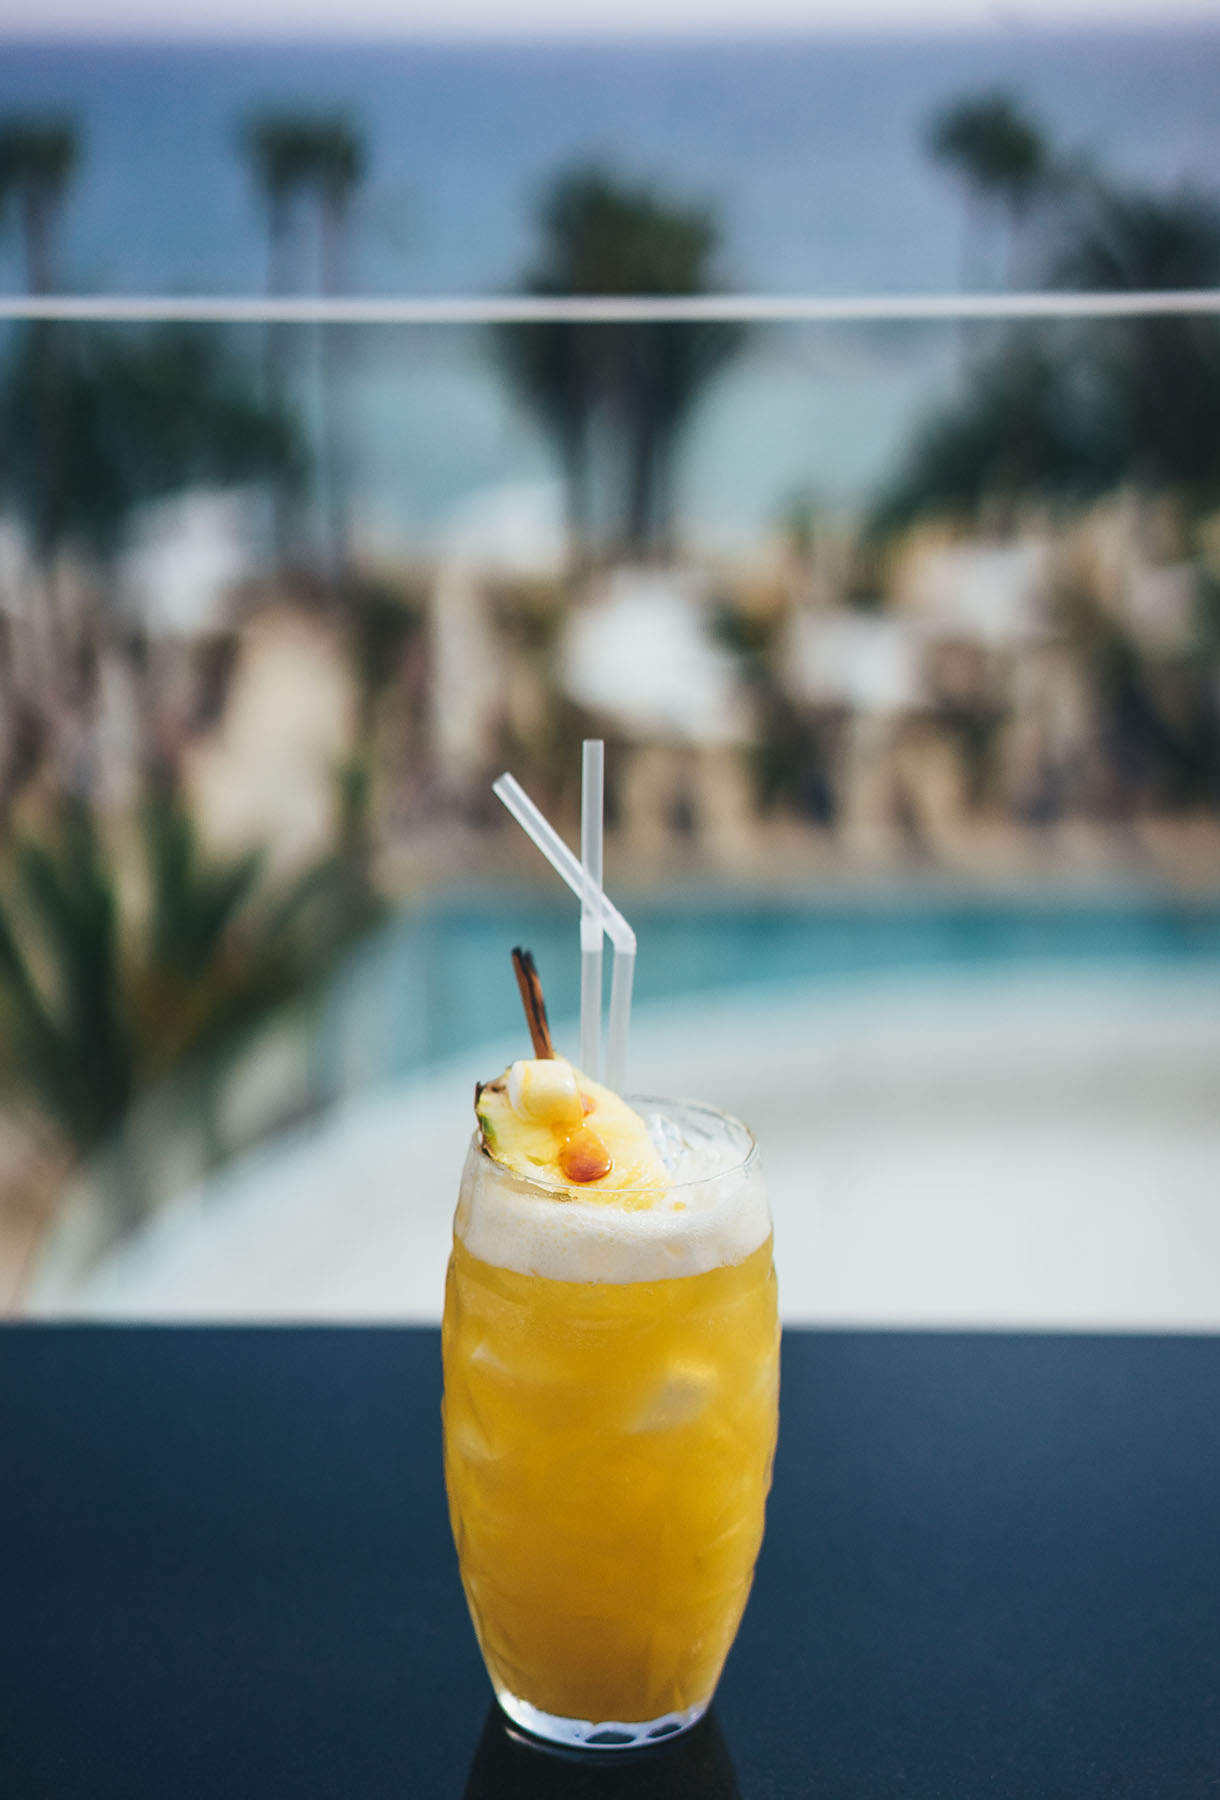 Annabelle_Ouranos_cocktails_-_Toasty_Colada_(Slowly_cooked_pineapple_juice__Plantation_rum__mix_of_cocoa_nutmeg__cinnamon)_(4).JPG